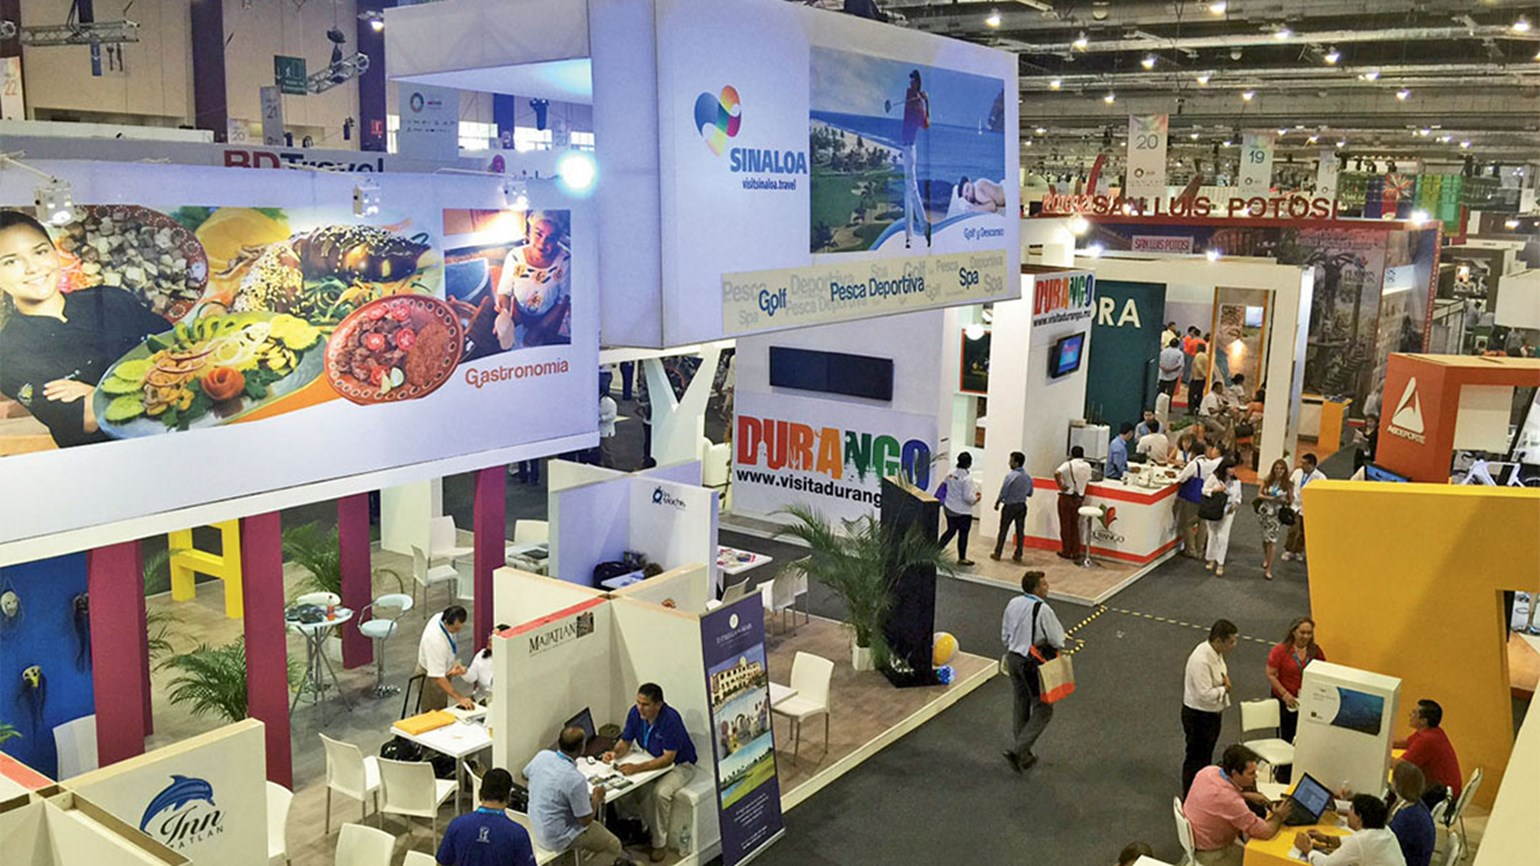 Touting renewal efforts, Acapulco again hosts Tianguis confab